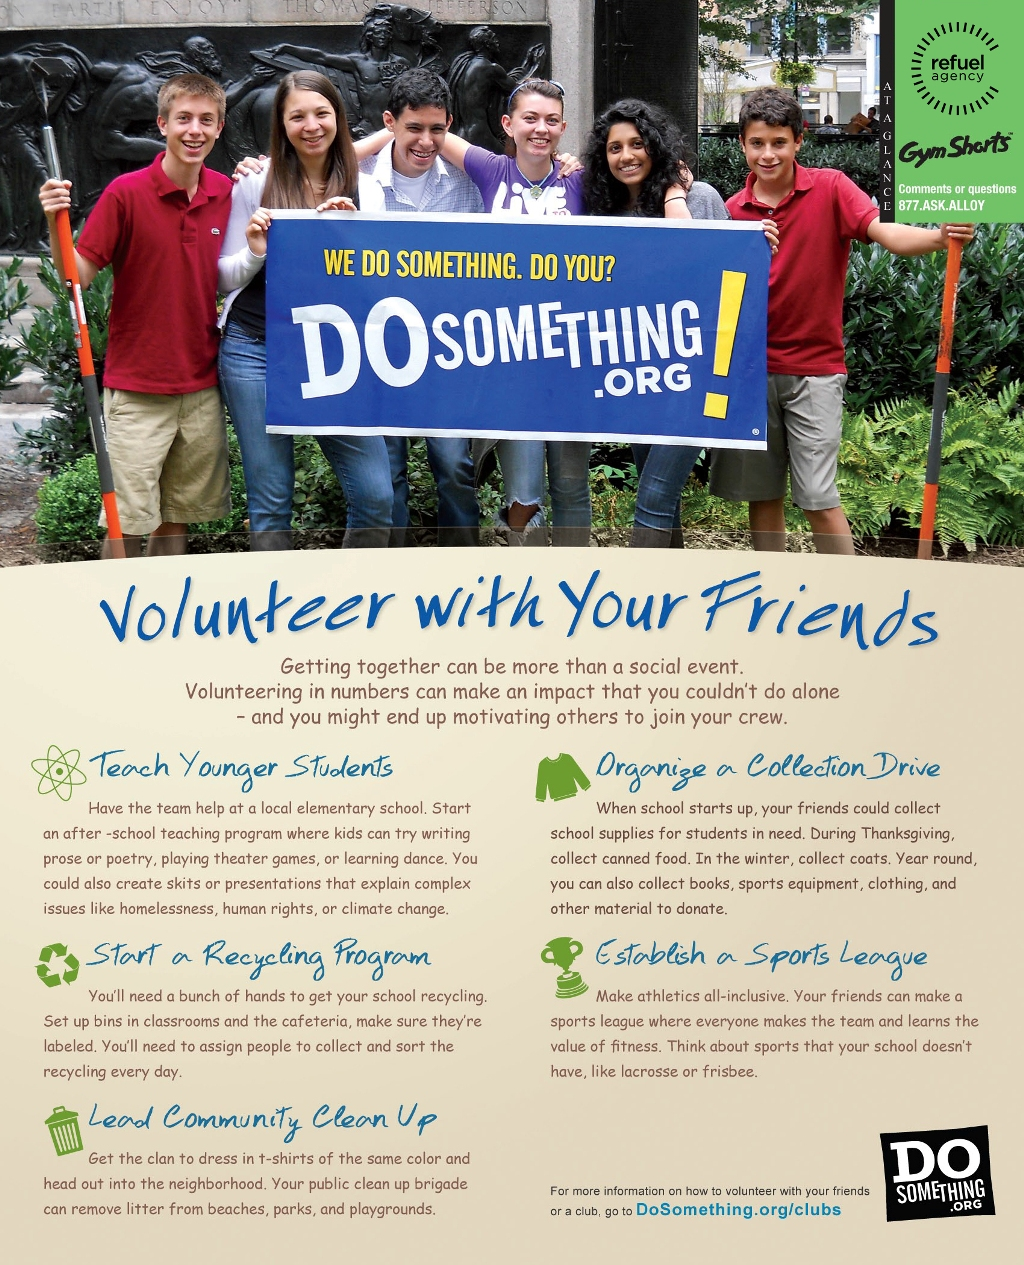 DoSomething.Org -Volunteer With Friends